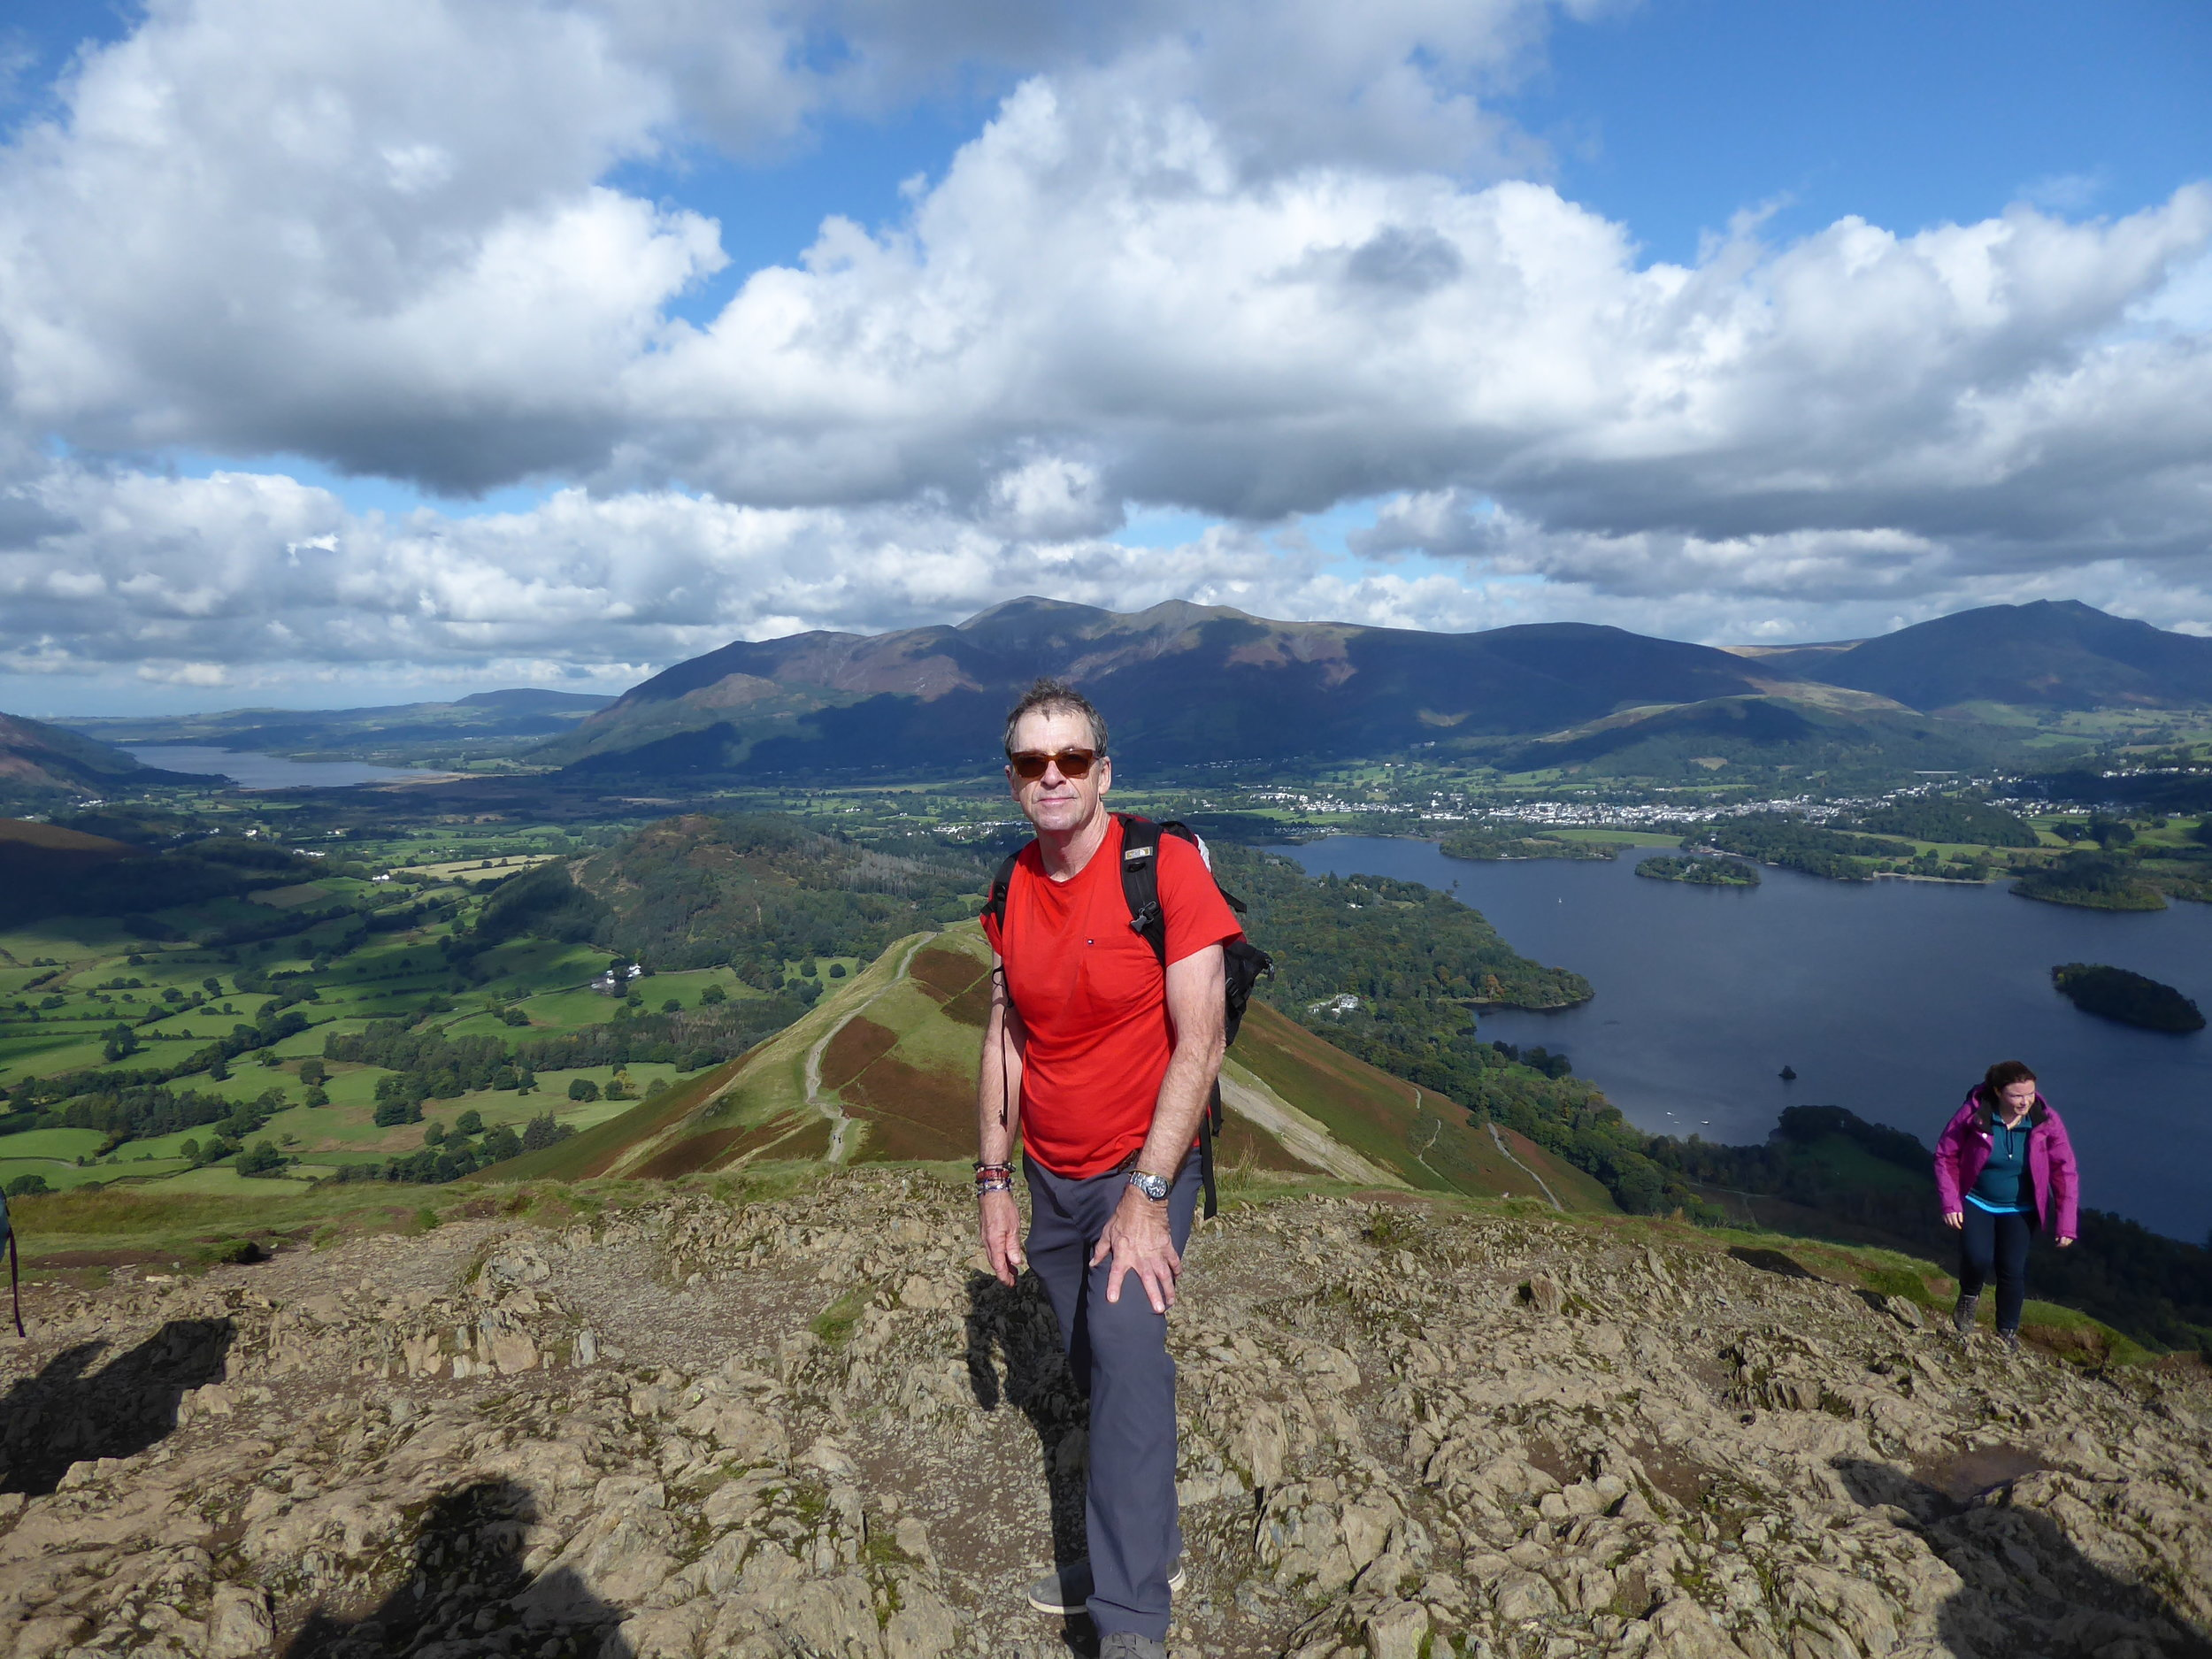 Steep hike up to the top of Catbells Mountain in the Lake District.